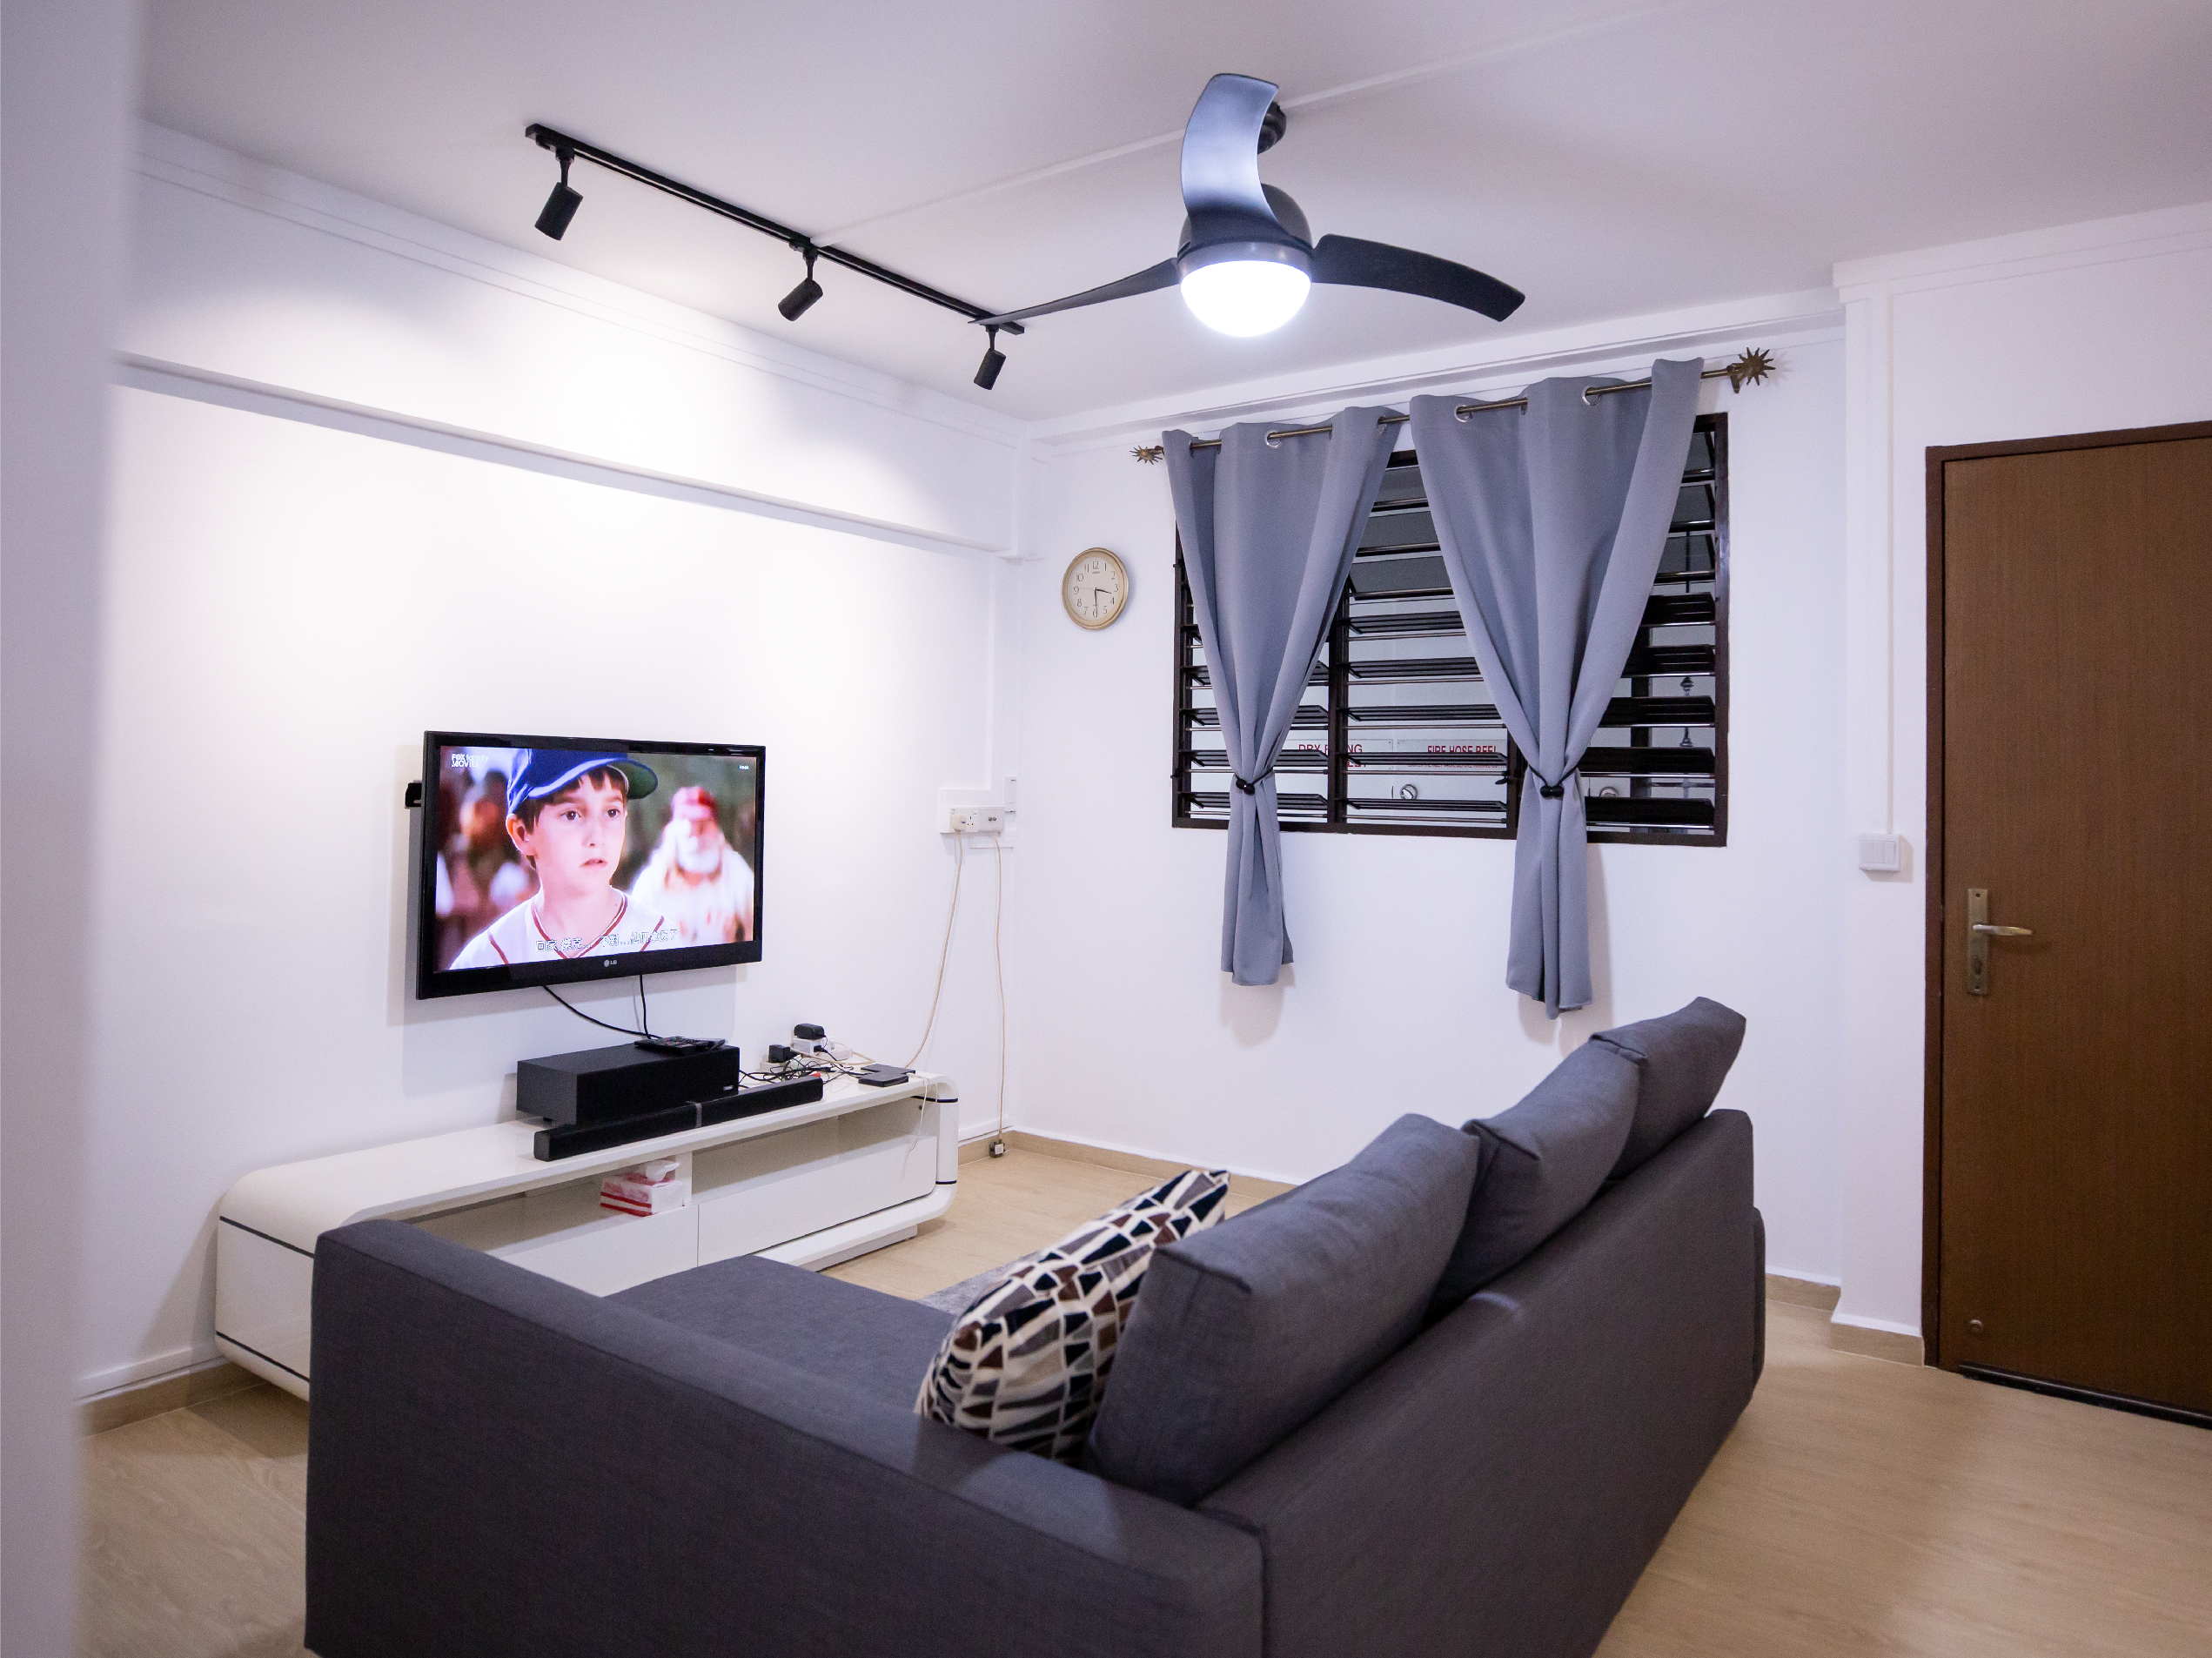 Living room of Derrick and Patricia's living room in Yishun